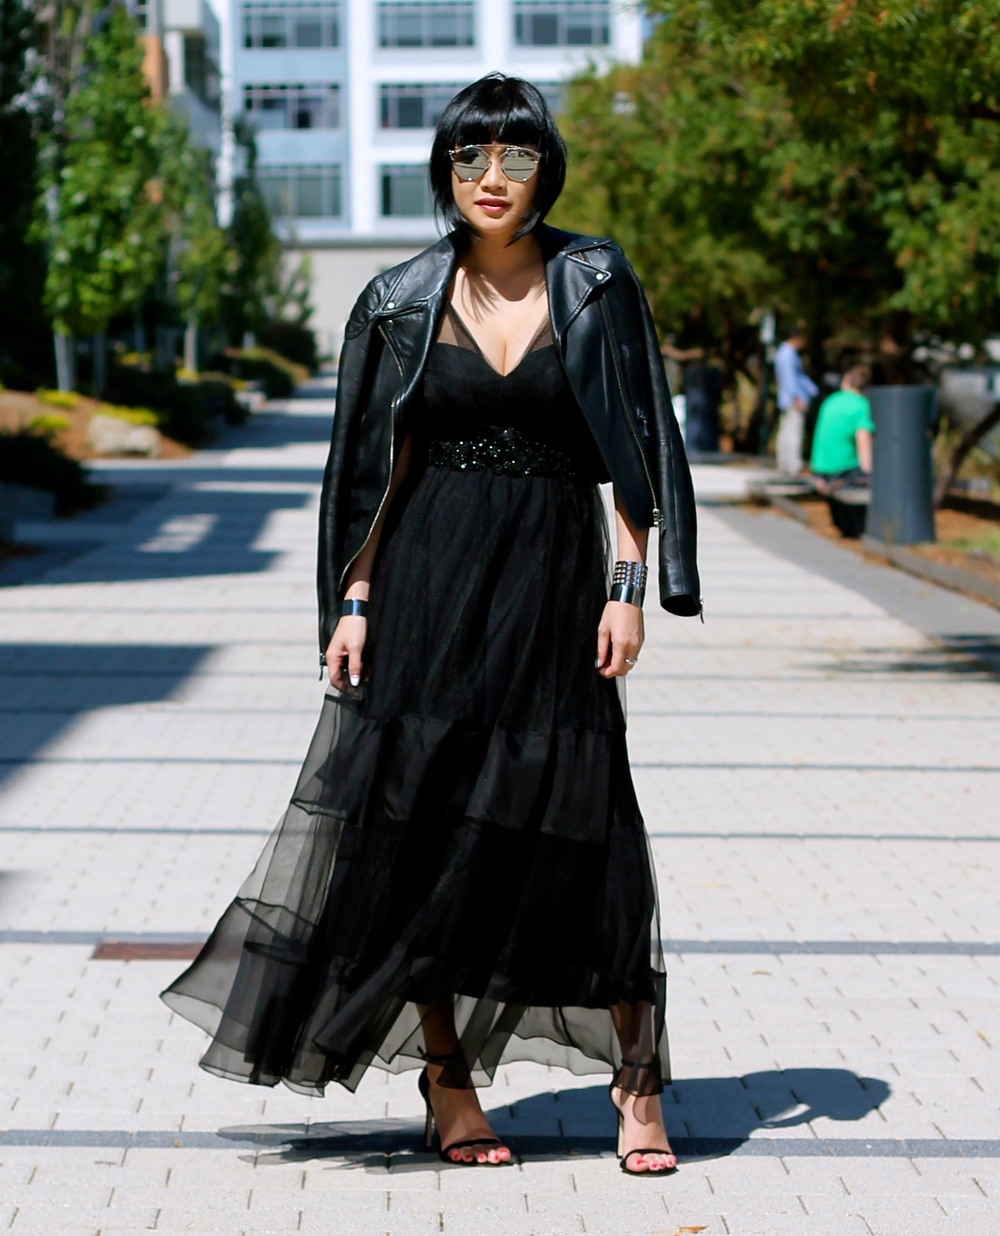 dress c/o Marchesa, Club Monaco leather jacket, Stuart Weitzman heels, Dior sunglasses, Svelte metals jewelry